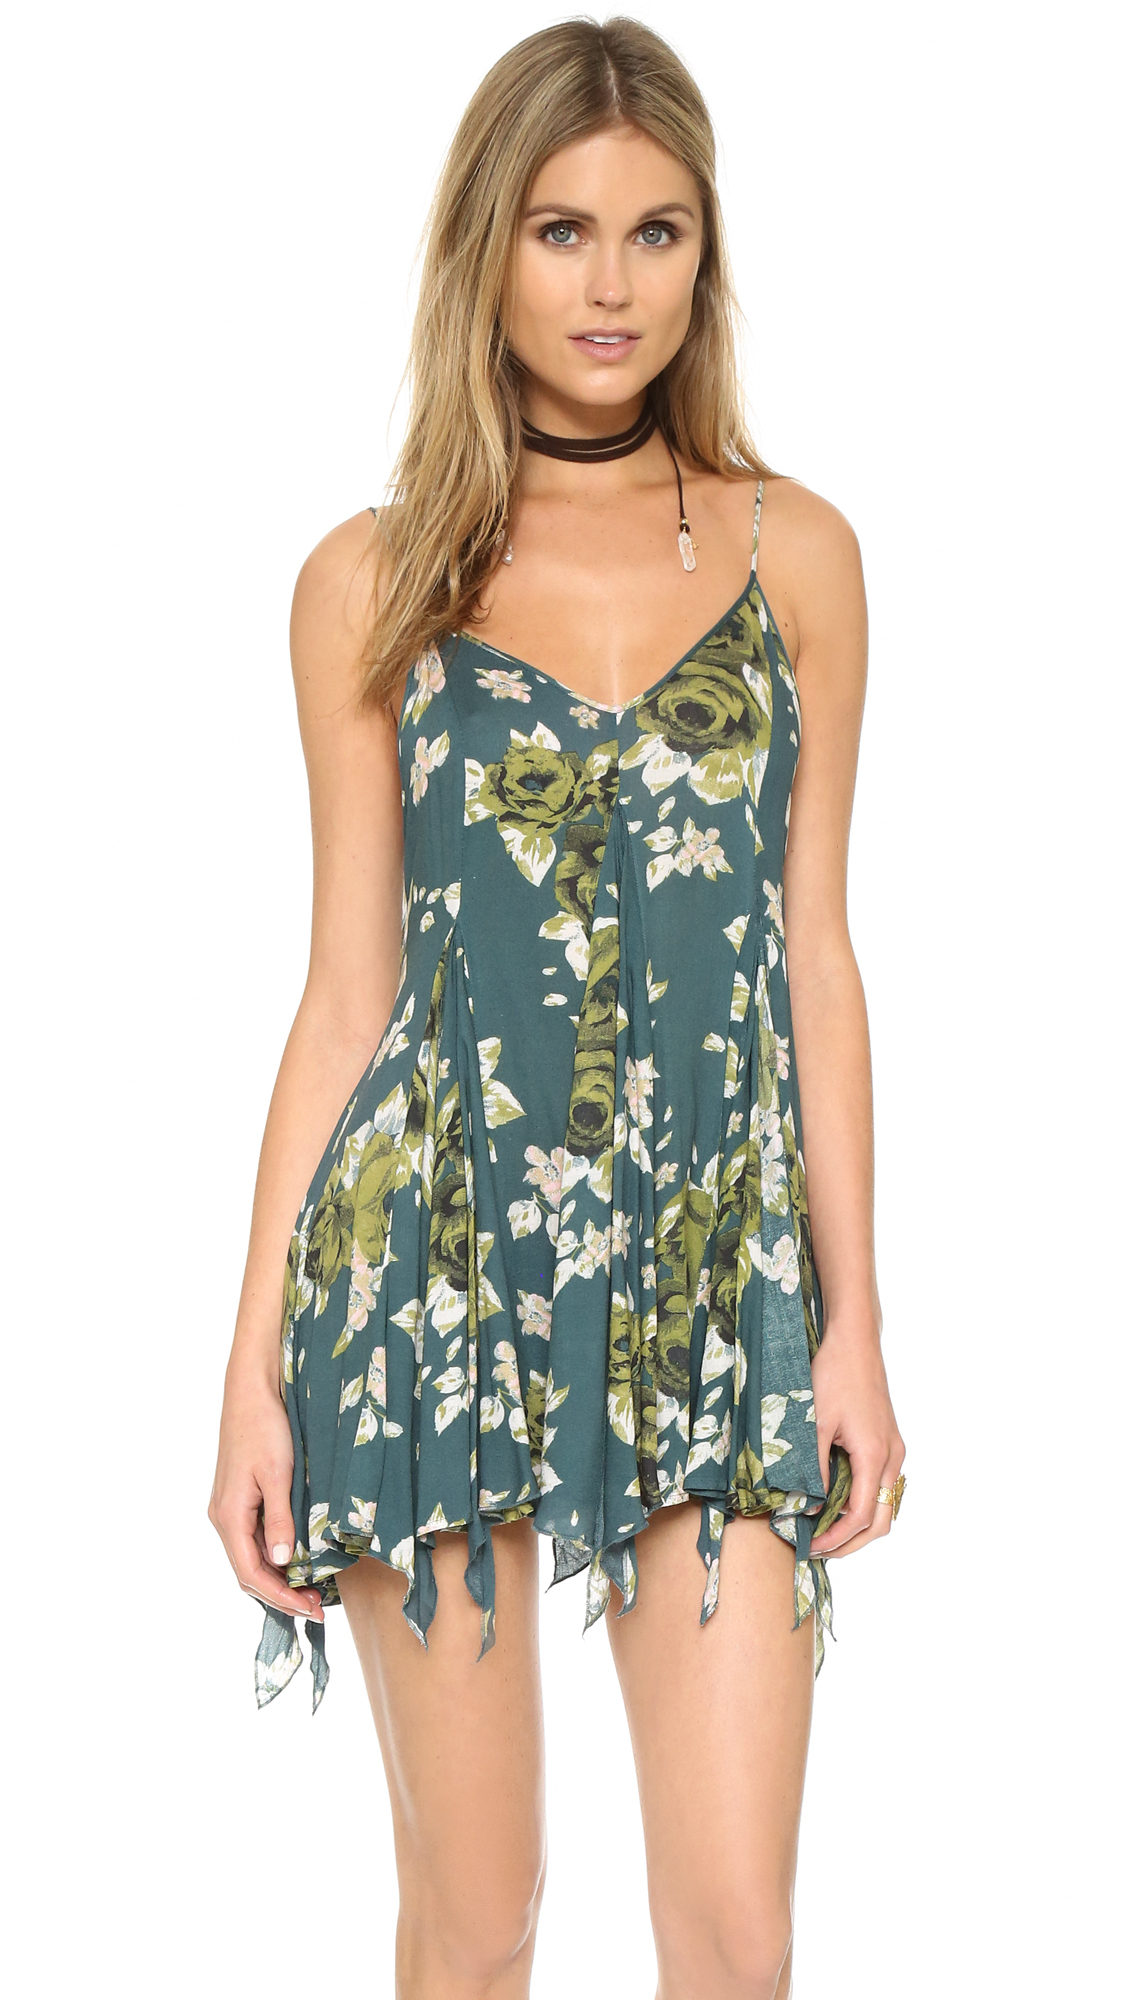 6d4ec34166f2d Free People Alyson Slip in Green - Lyst